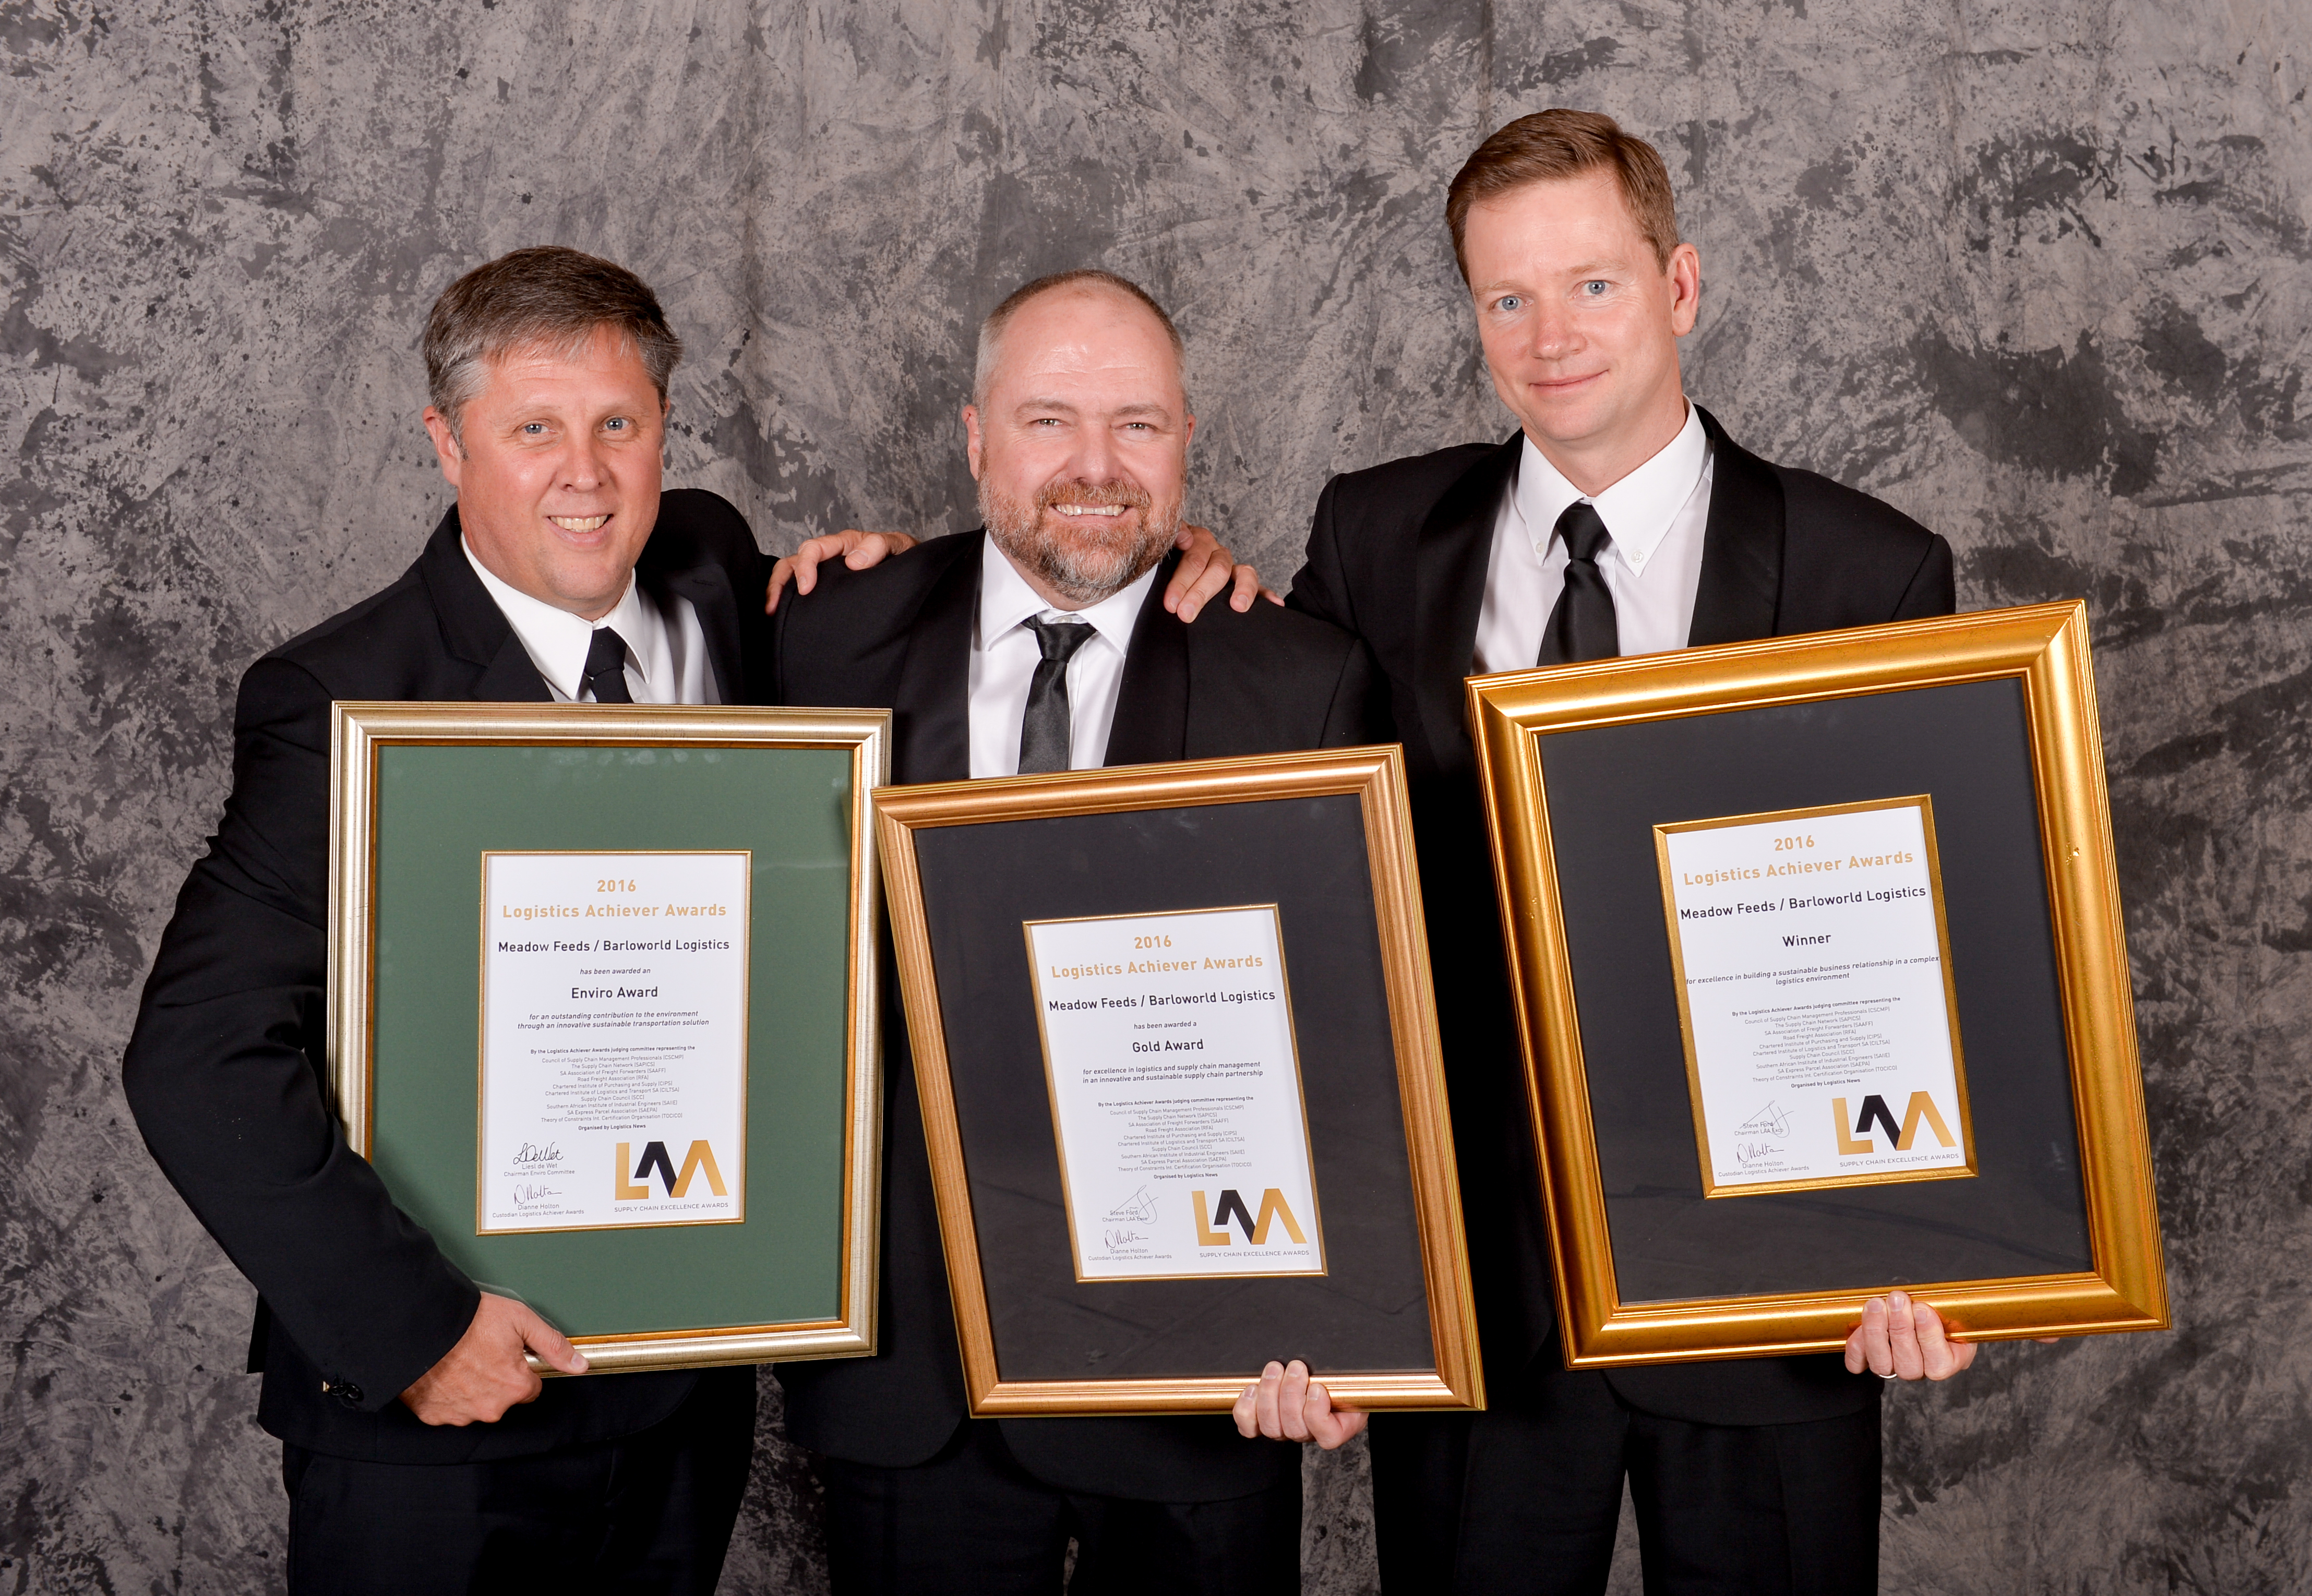 From left to right: Mark Rylance and Heath Dormer (both from Barloworld Transport) and James Berry - COO Meadow Feeds (Western Cape)